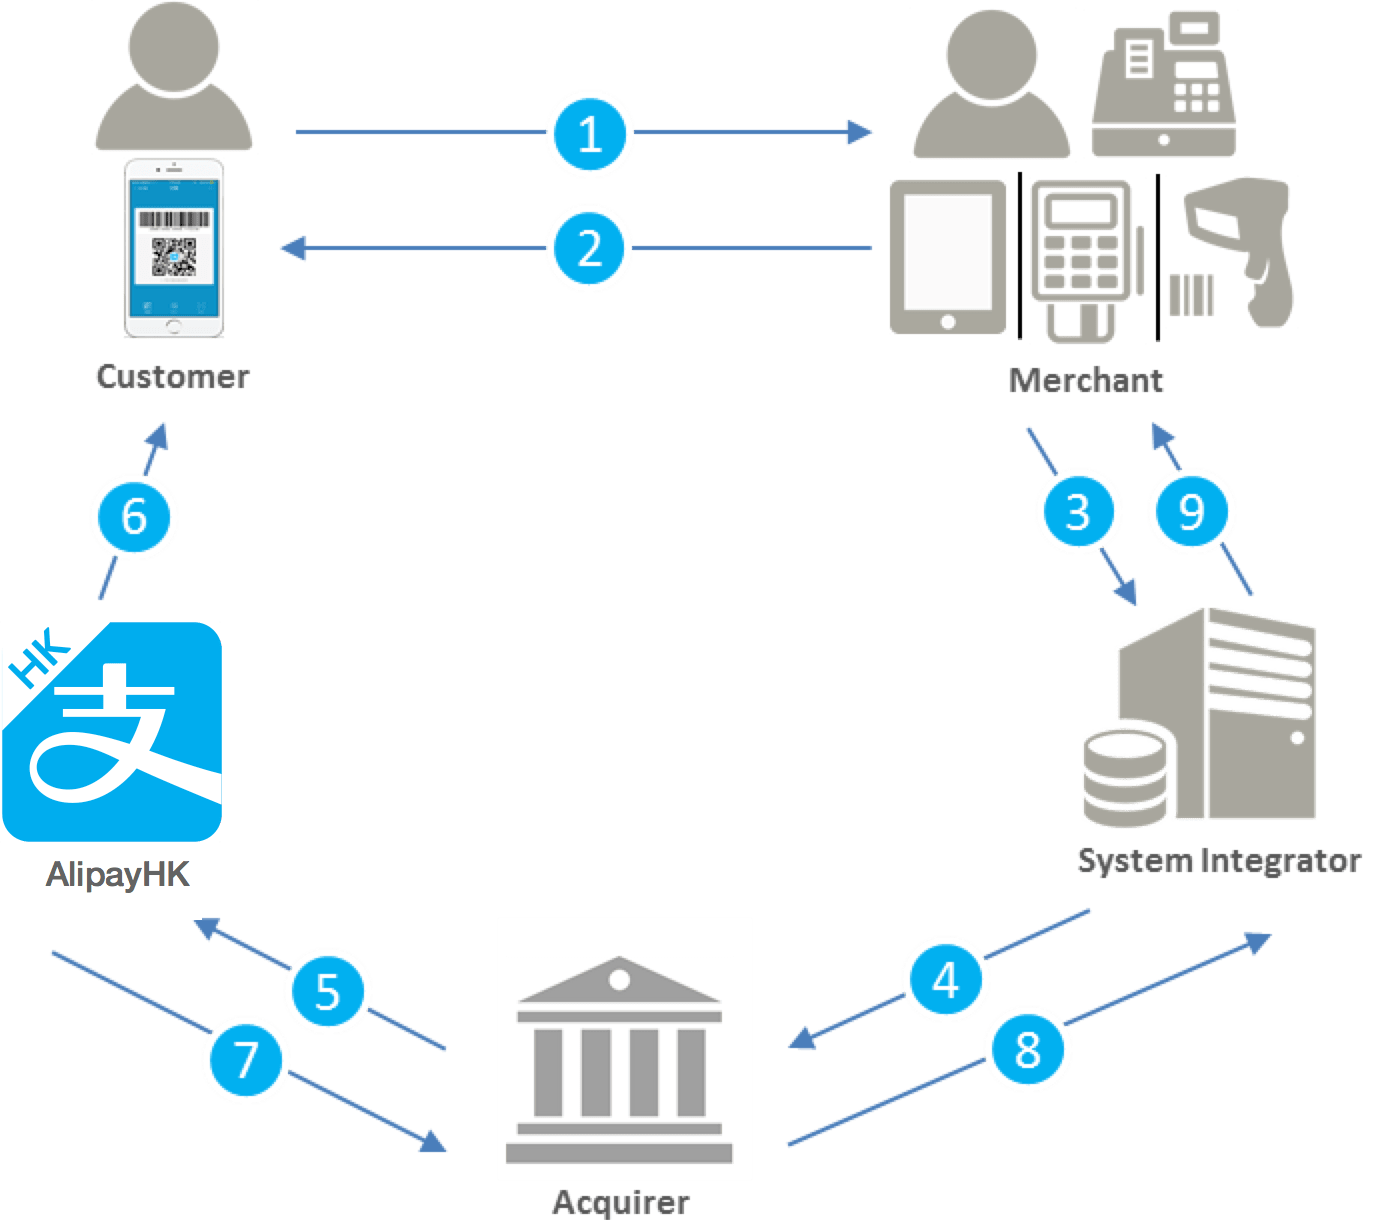 Alipay Documentation Merchant scans with Integrator and Acquirer